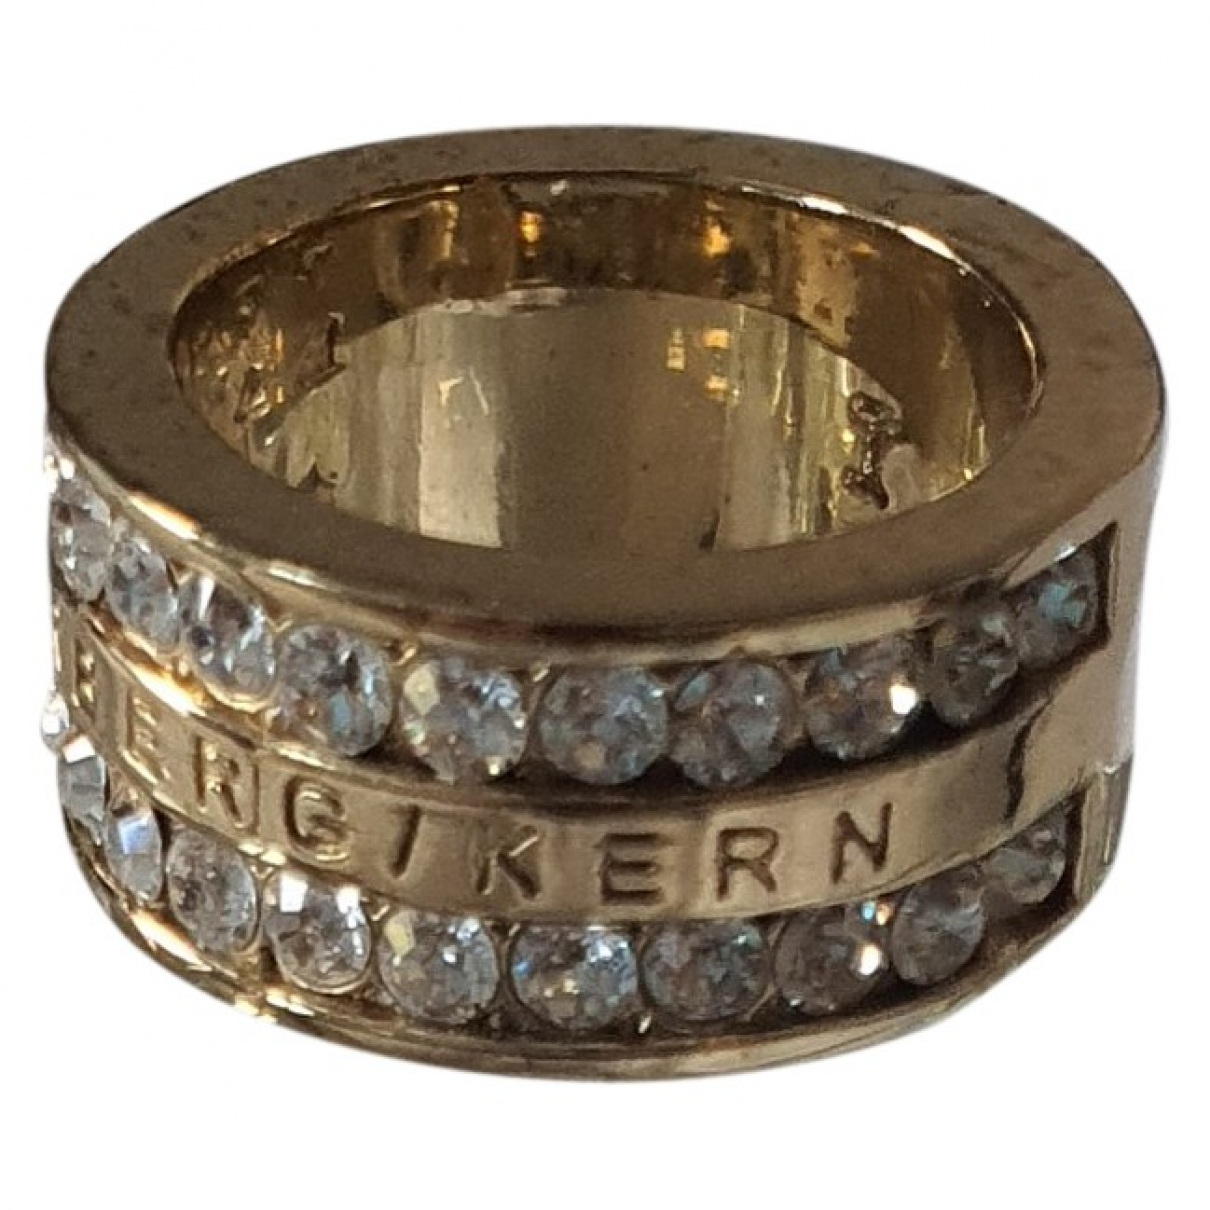 Dyrberg/kern \N Gold Metal ring for Women \N